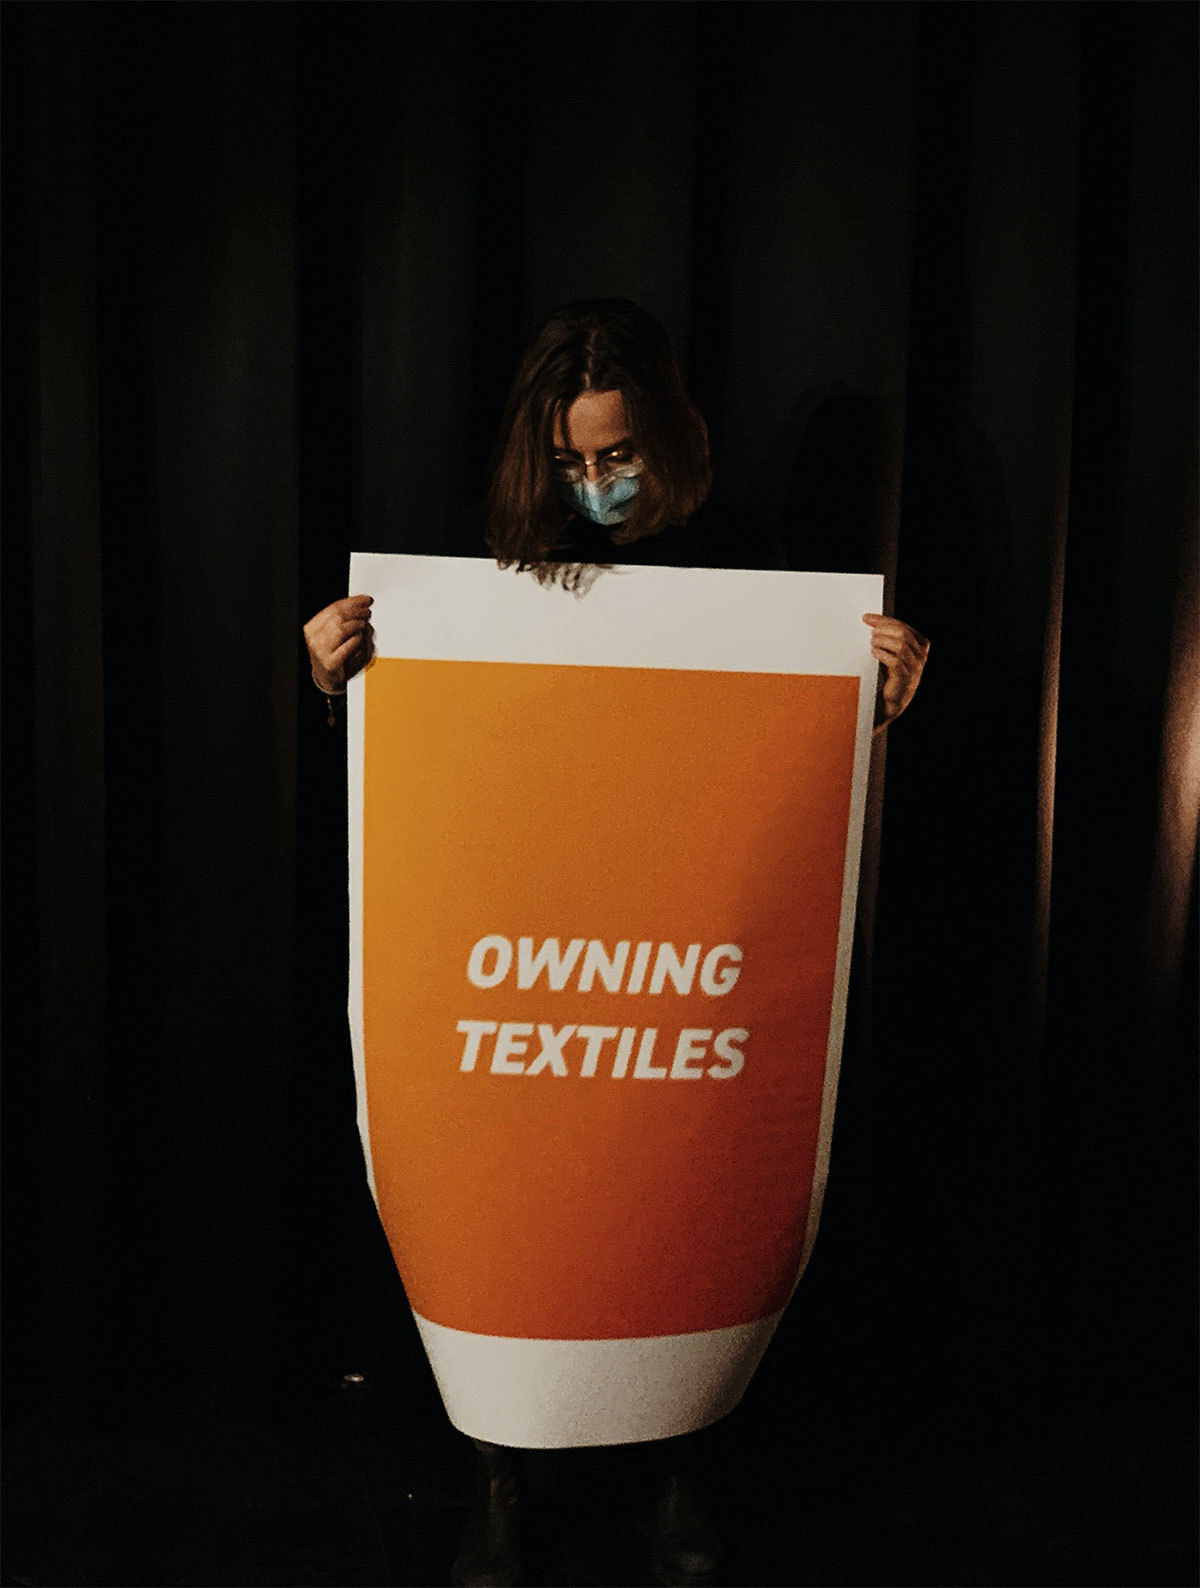 'Owning Textiles' Design research project by Frederike Bartzsch snd Stefan Lang